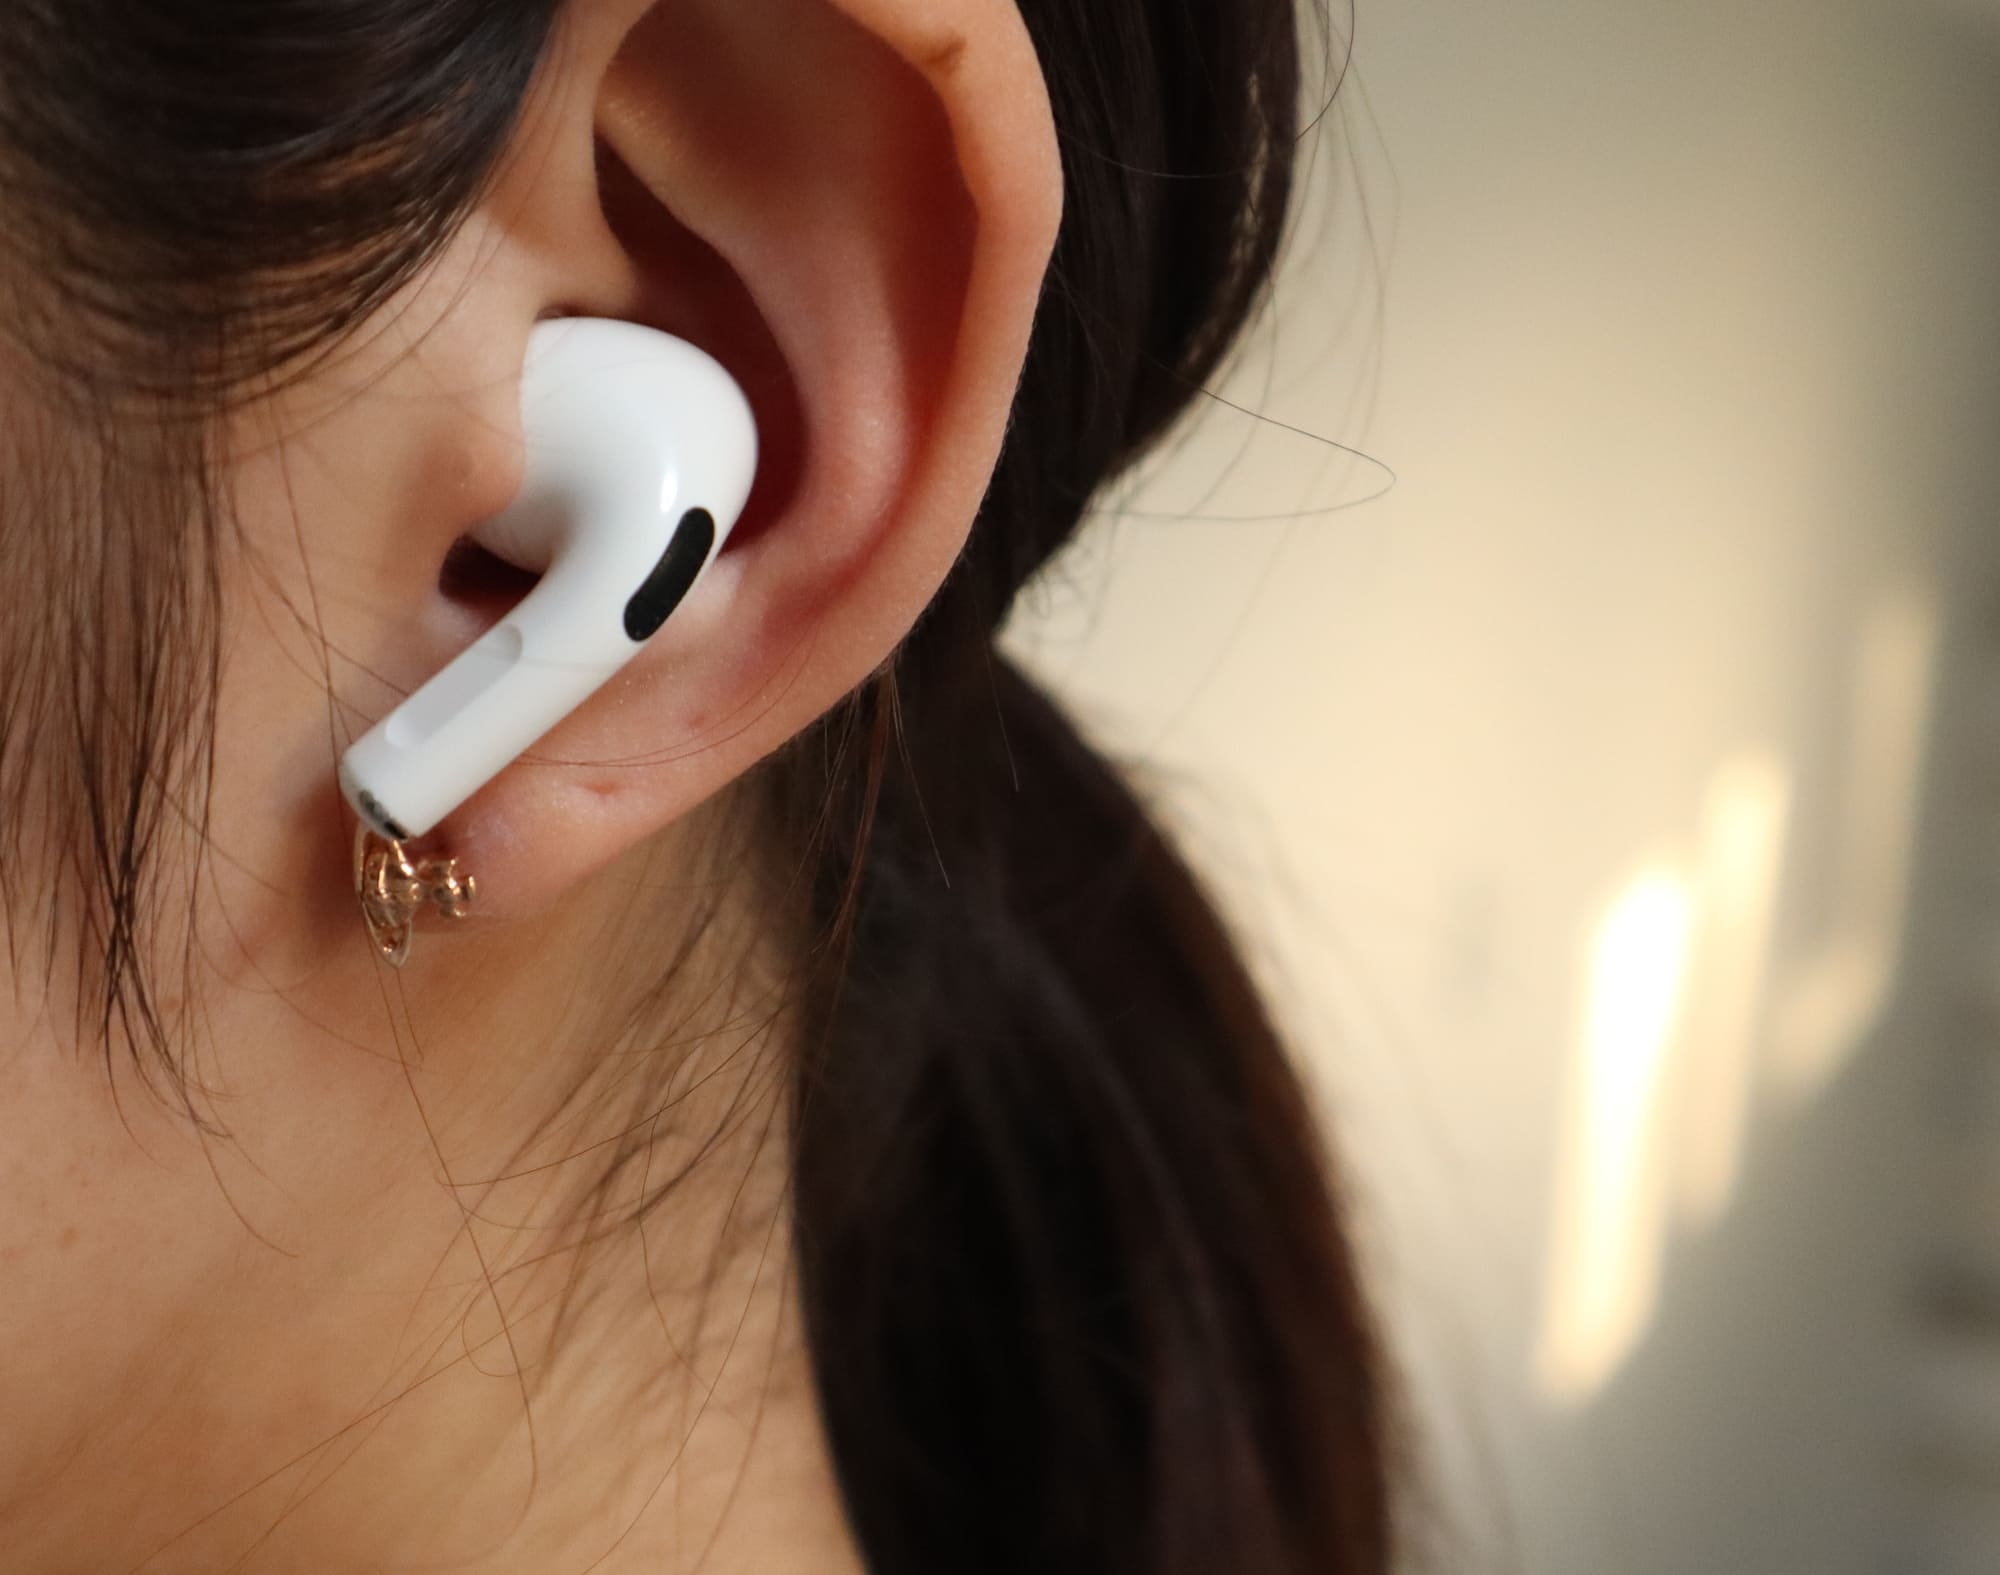 AirPods Proの装着感